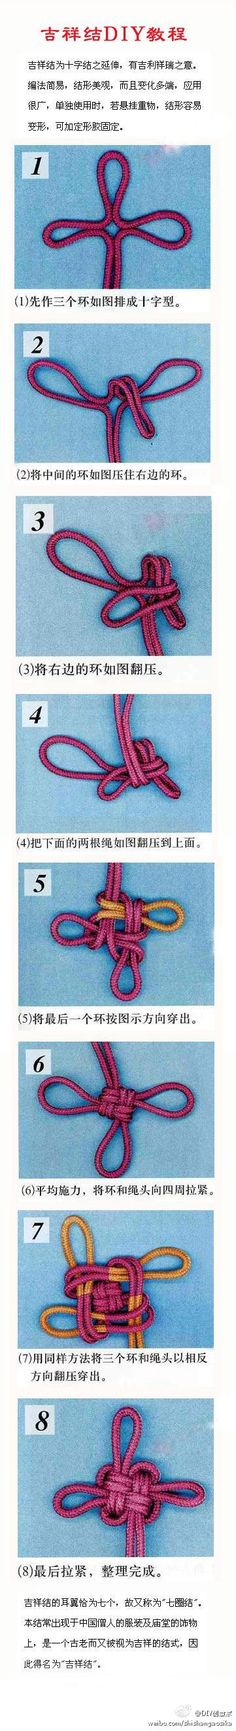 Knot - Instructions aren't in English, but the images are clear.